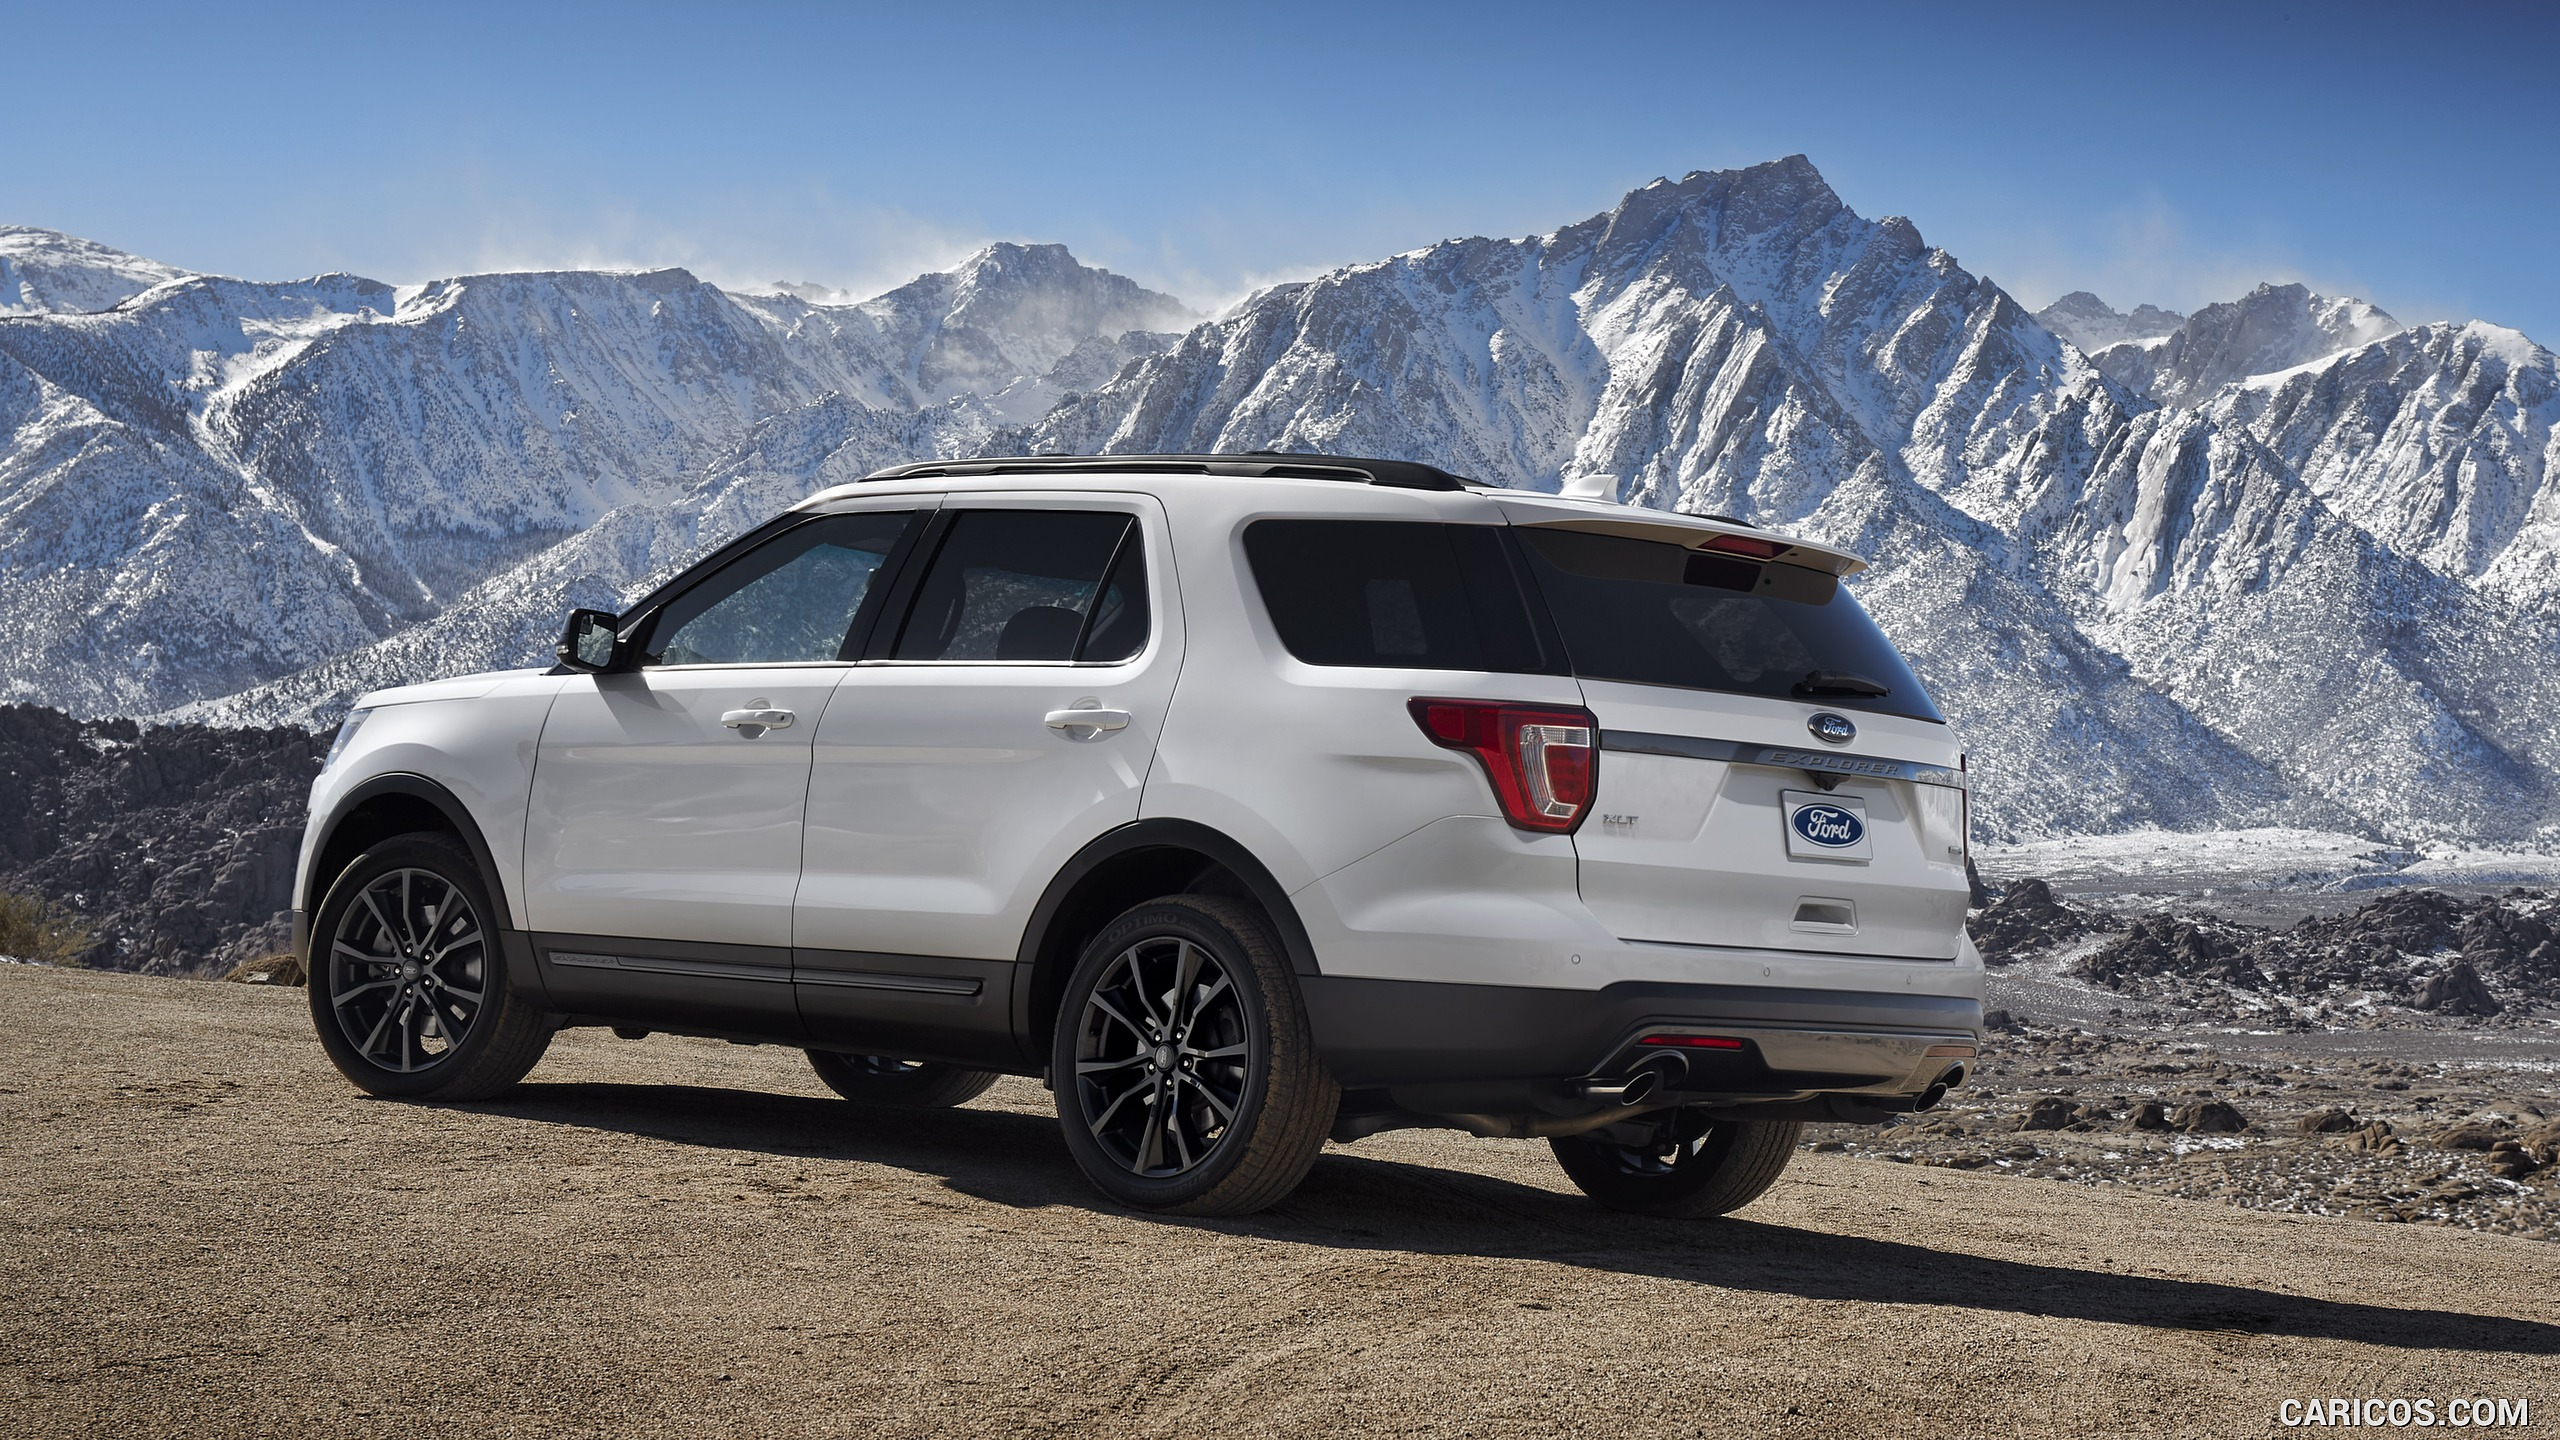 2560x1440 - Ford Explorer Wallpapers 12